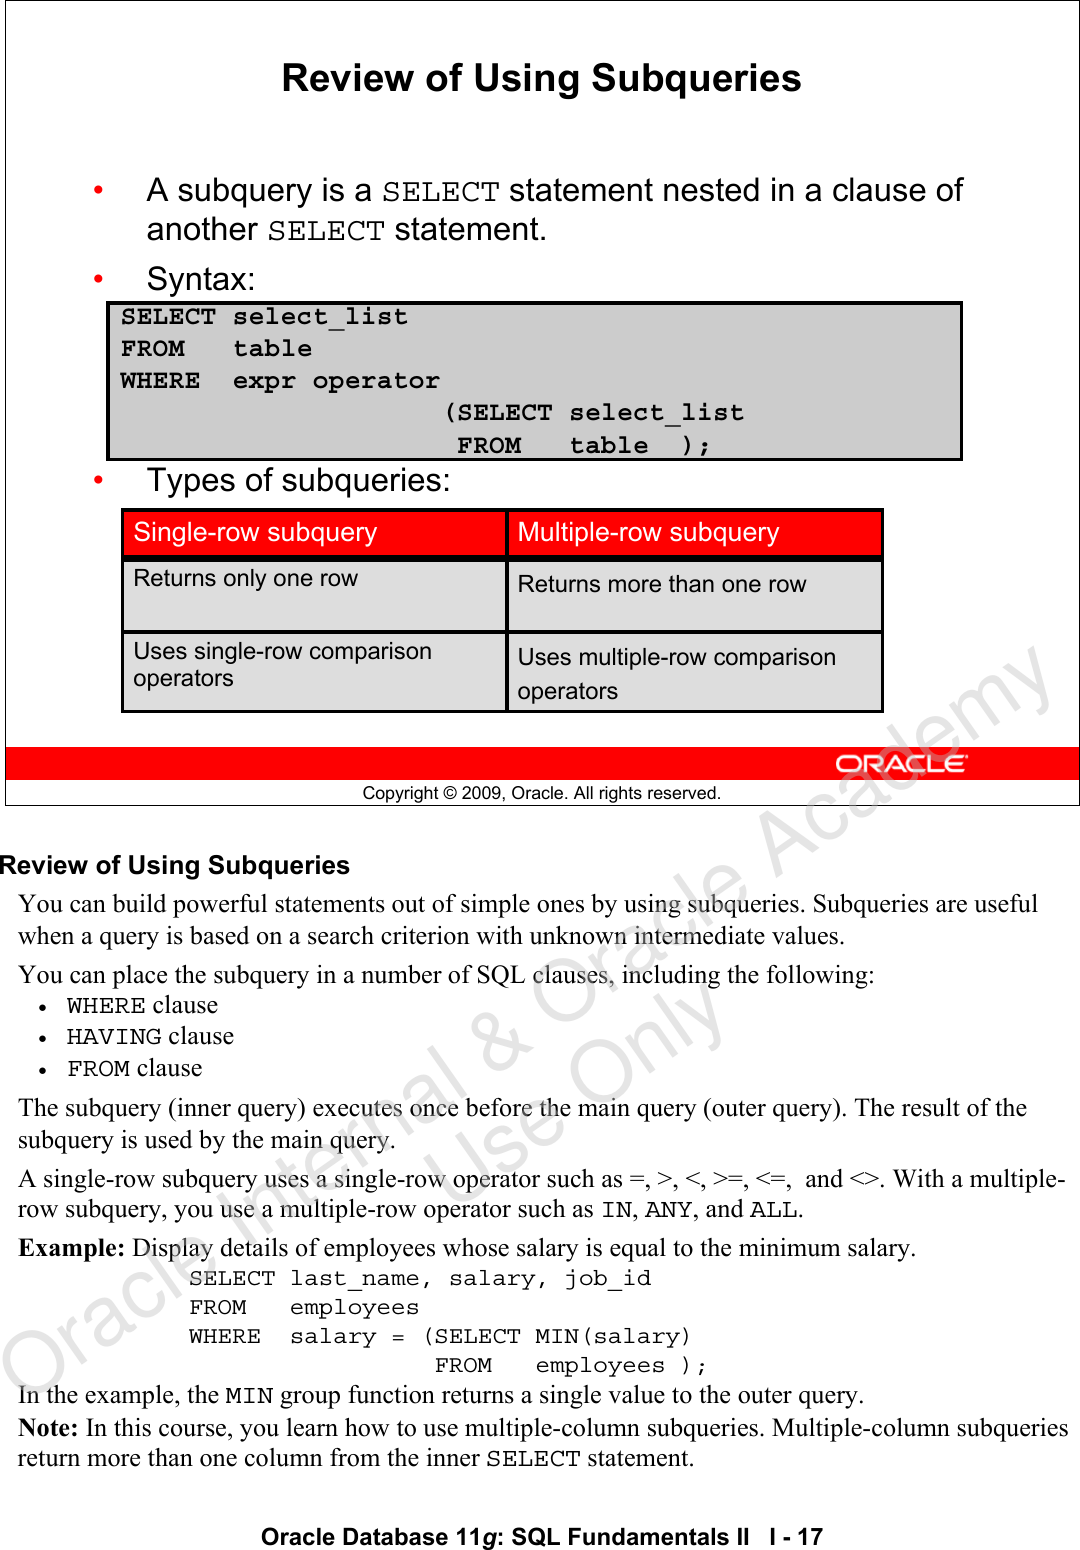 Microsoft CoverPage_1 [Read Only] Oracle Database 11g SQL